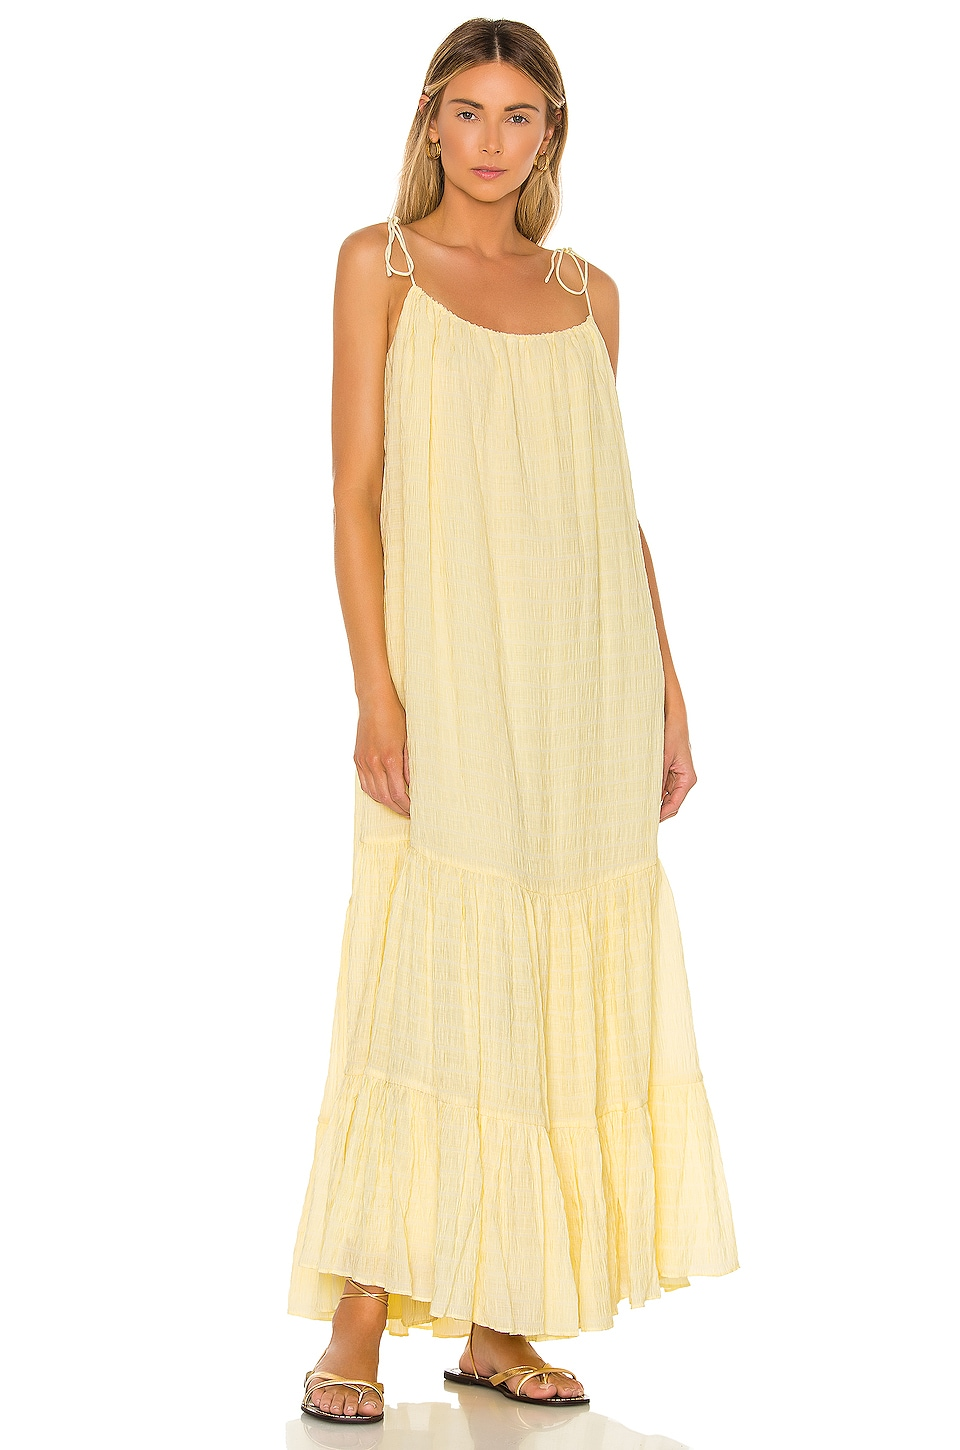 ANINE BING Scarlett Dress in Yellow